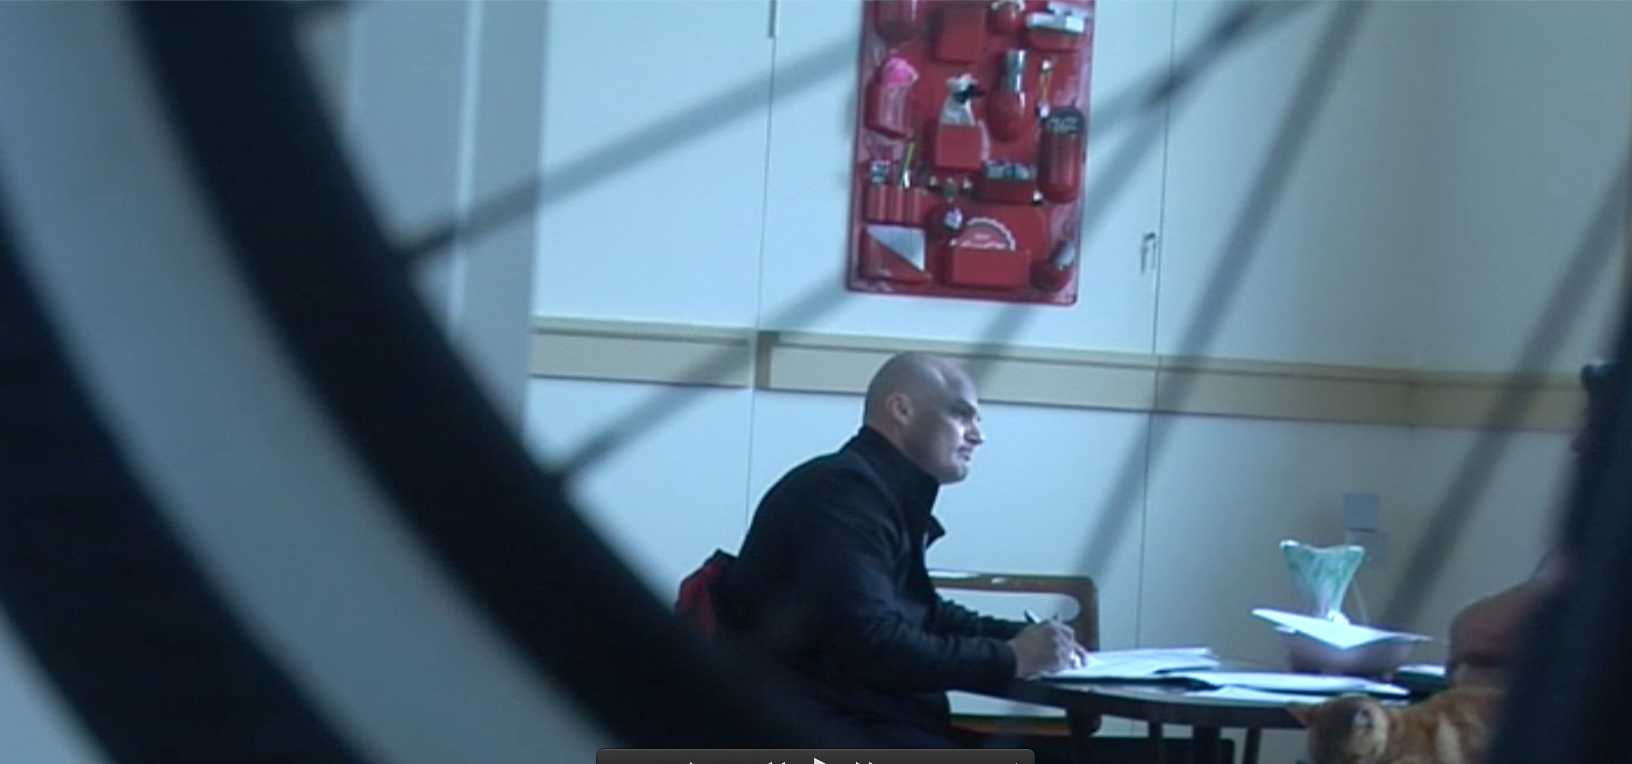 Video still: Expat Africaaner detective constable Uvaan Englebrecht of the New Zealand police interviews Cameron Slaters witness following more false allegations to police designed as an attempt to discredit.